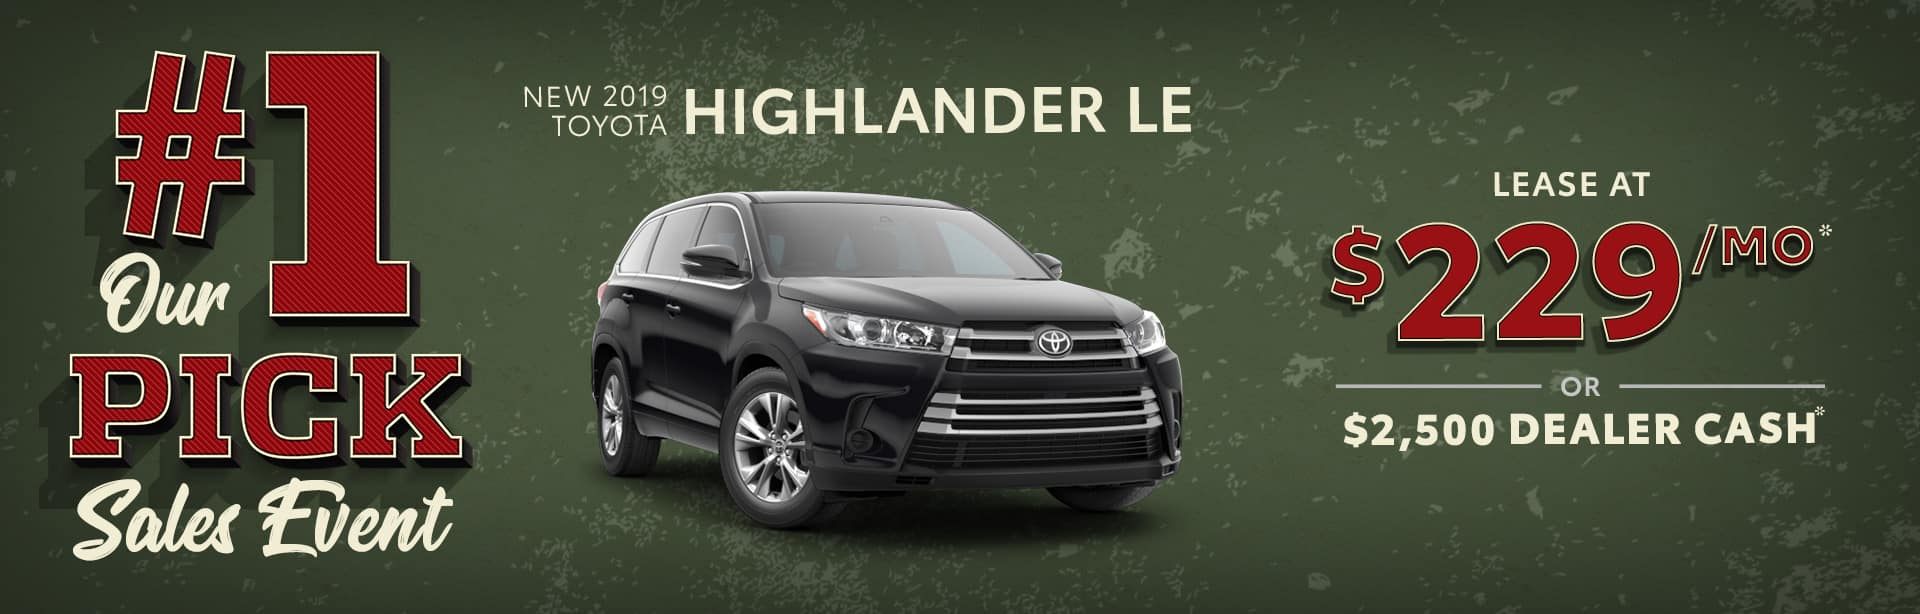 New 2019 Toyota Highlander Special at Sand Mountain Toyota